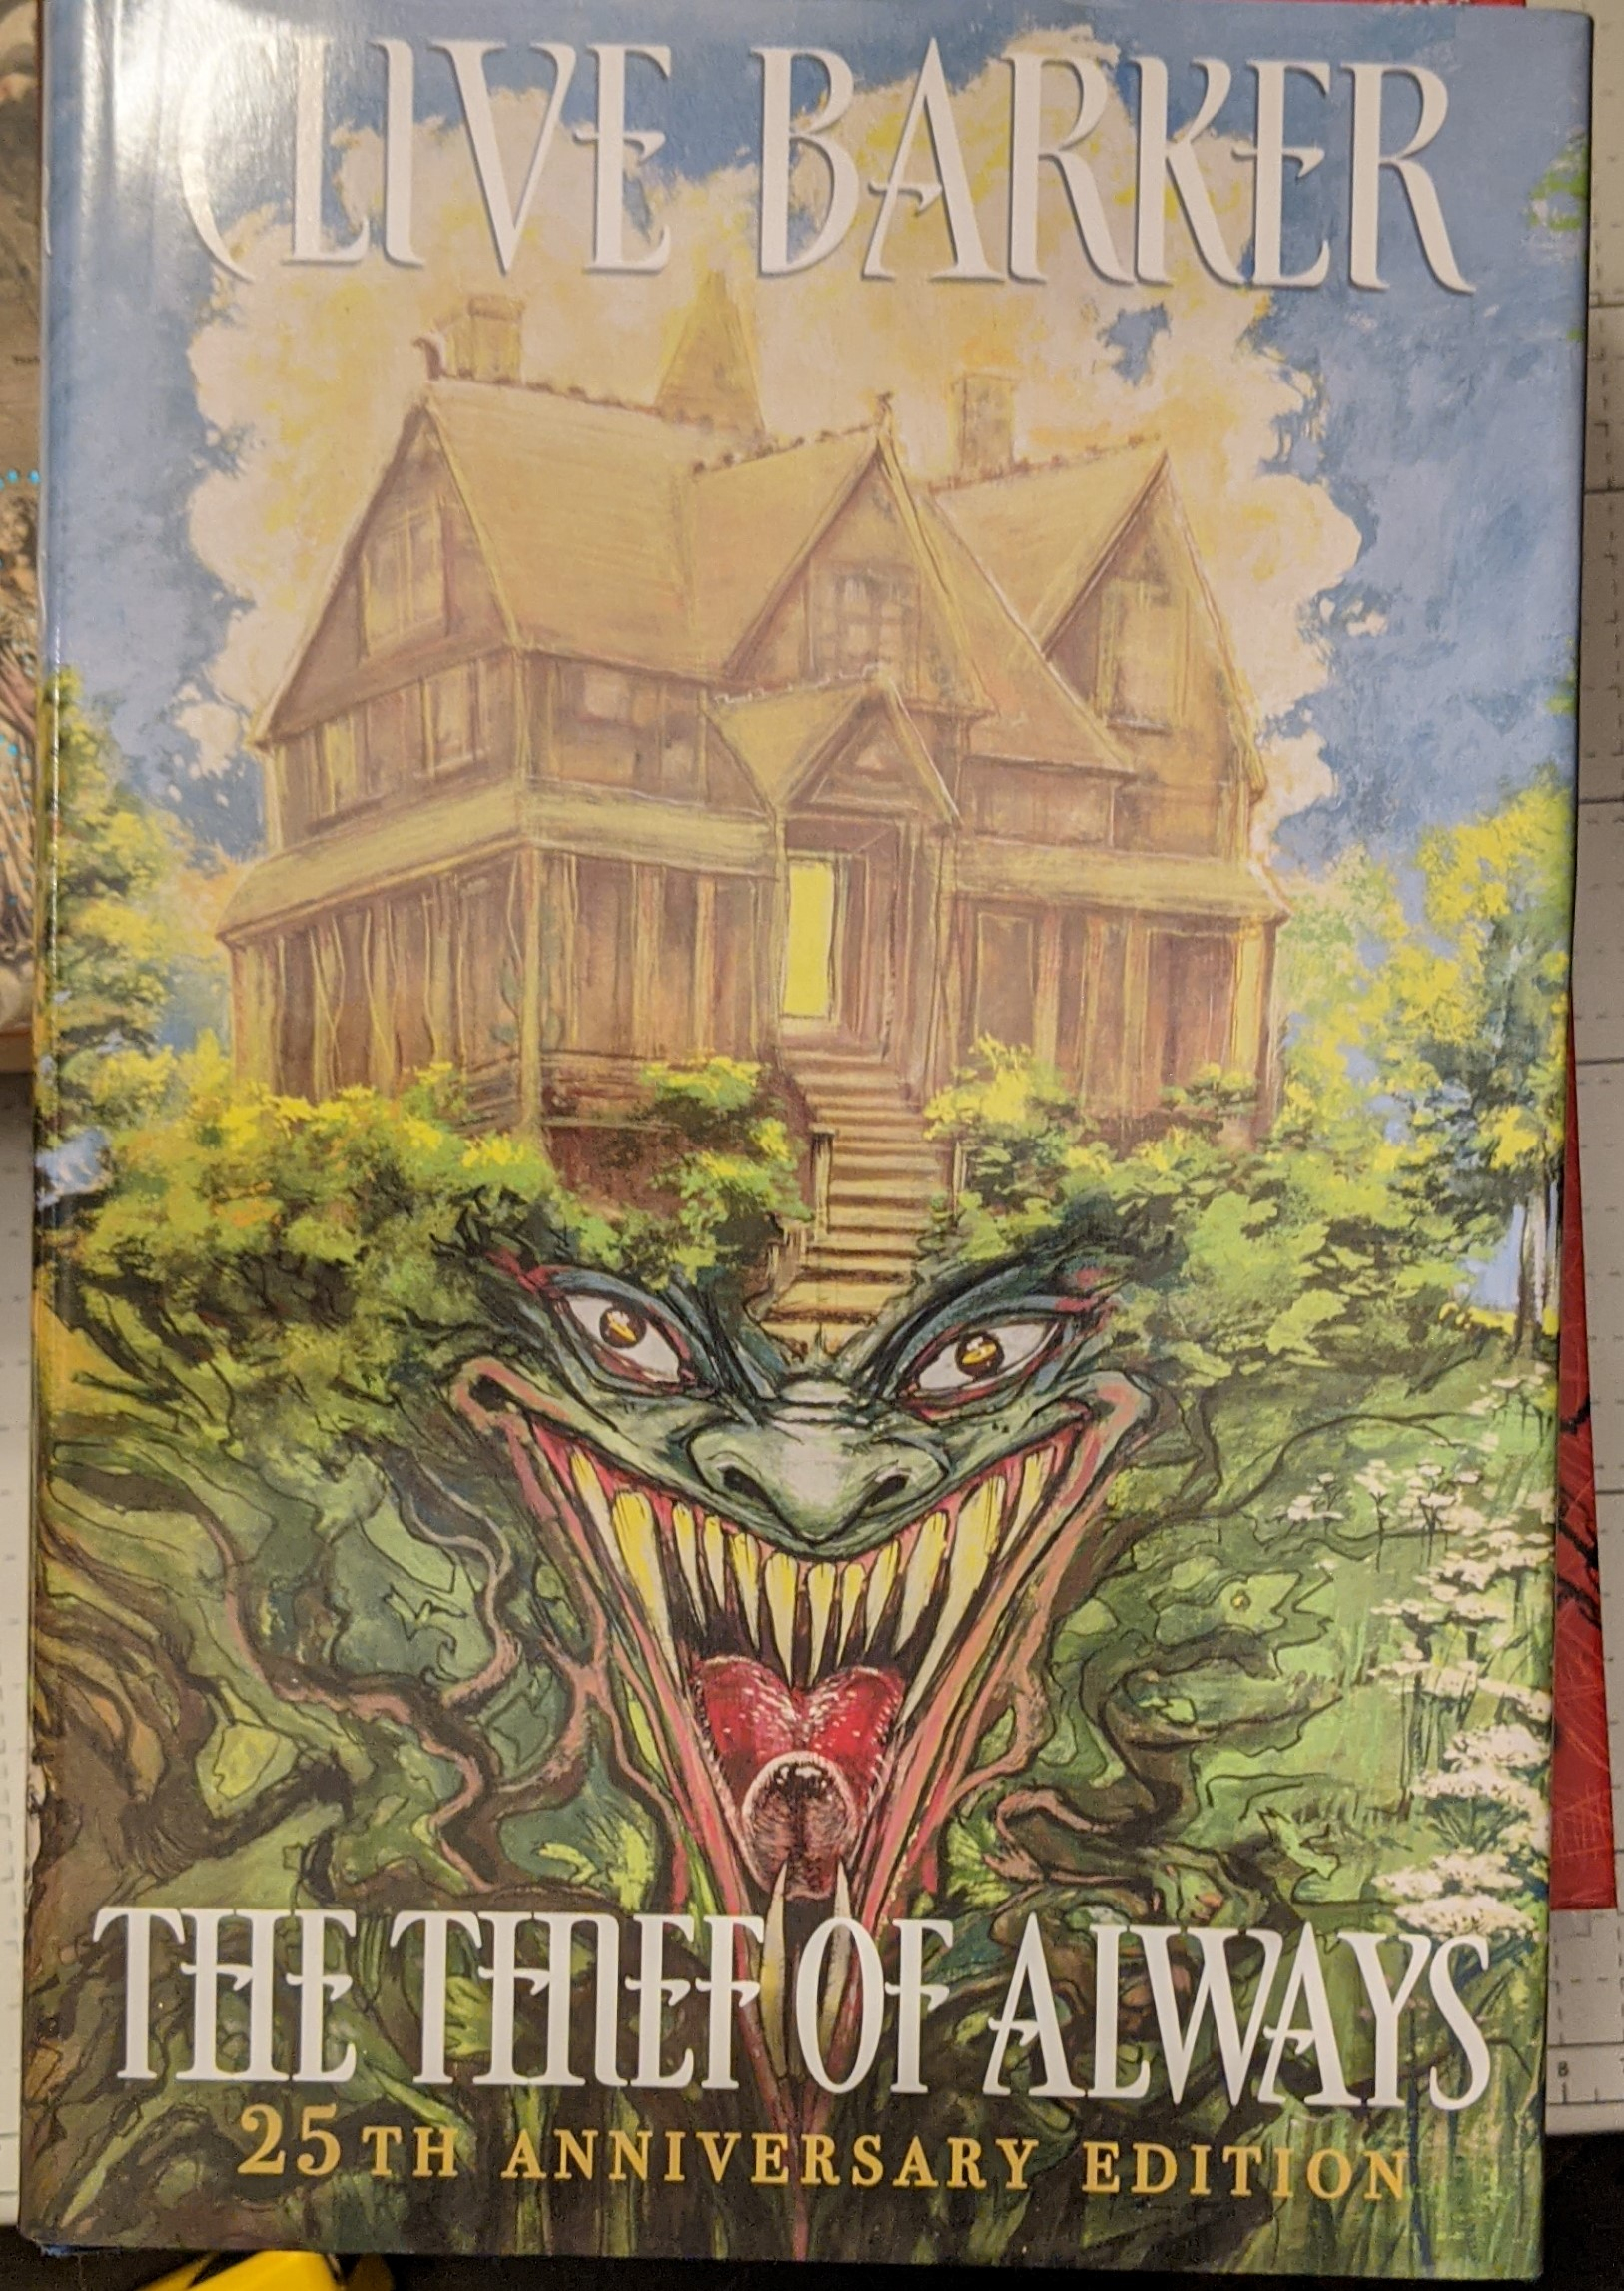 The Thief of Always by Clive Barker Autographed Publisher's Copy Hardcover Book